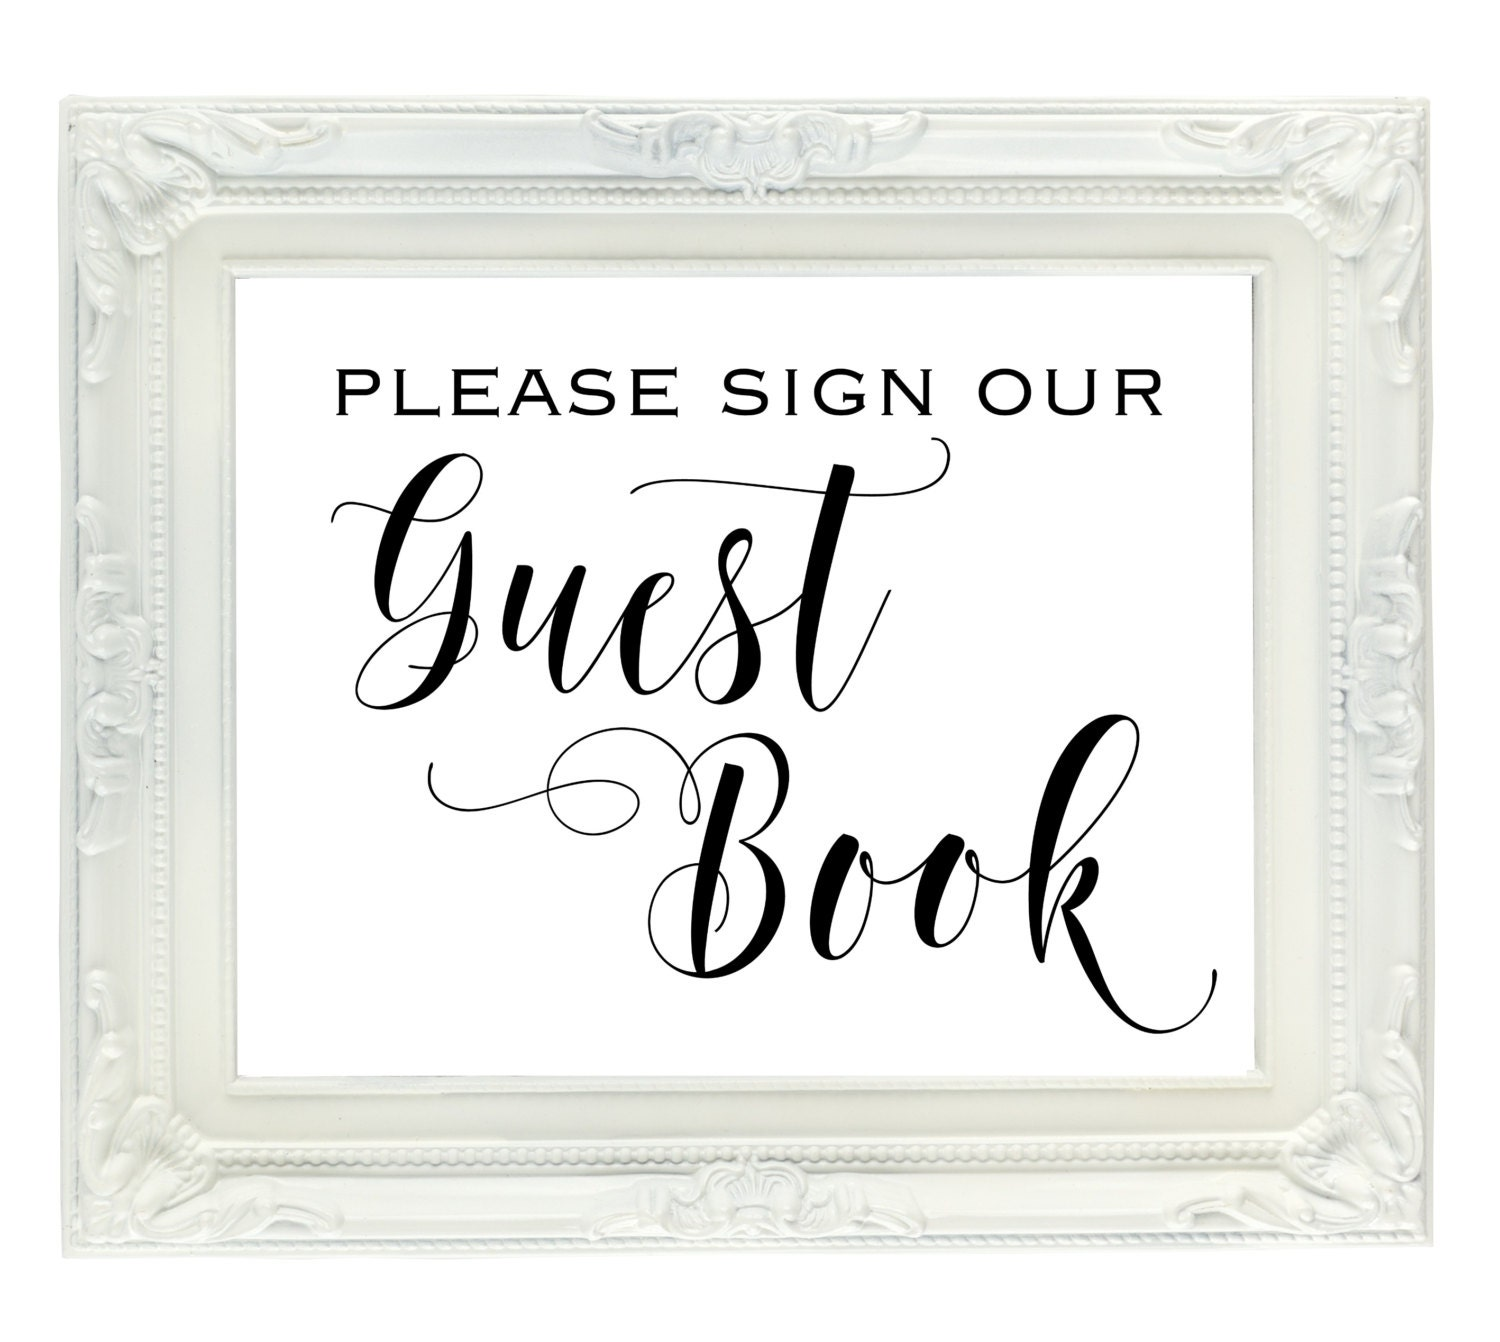 Guest Book Wedding Sign Please Sign Our Guest Book Printable. Safari Themed Birthday Party Invitations Template. Three Fold Brochure Template. Invitations To Print At Home Template. Term Paper Template Word Template. Job Interview Attire For Females Template. Football Flyer Template. Avery Index Maker Template. Personal Statement Computer Science Template